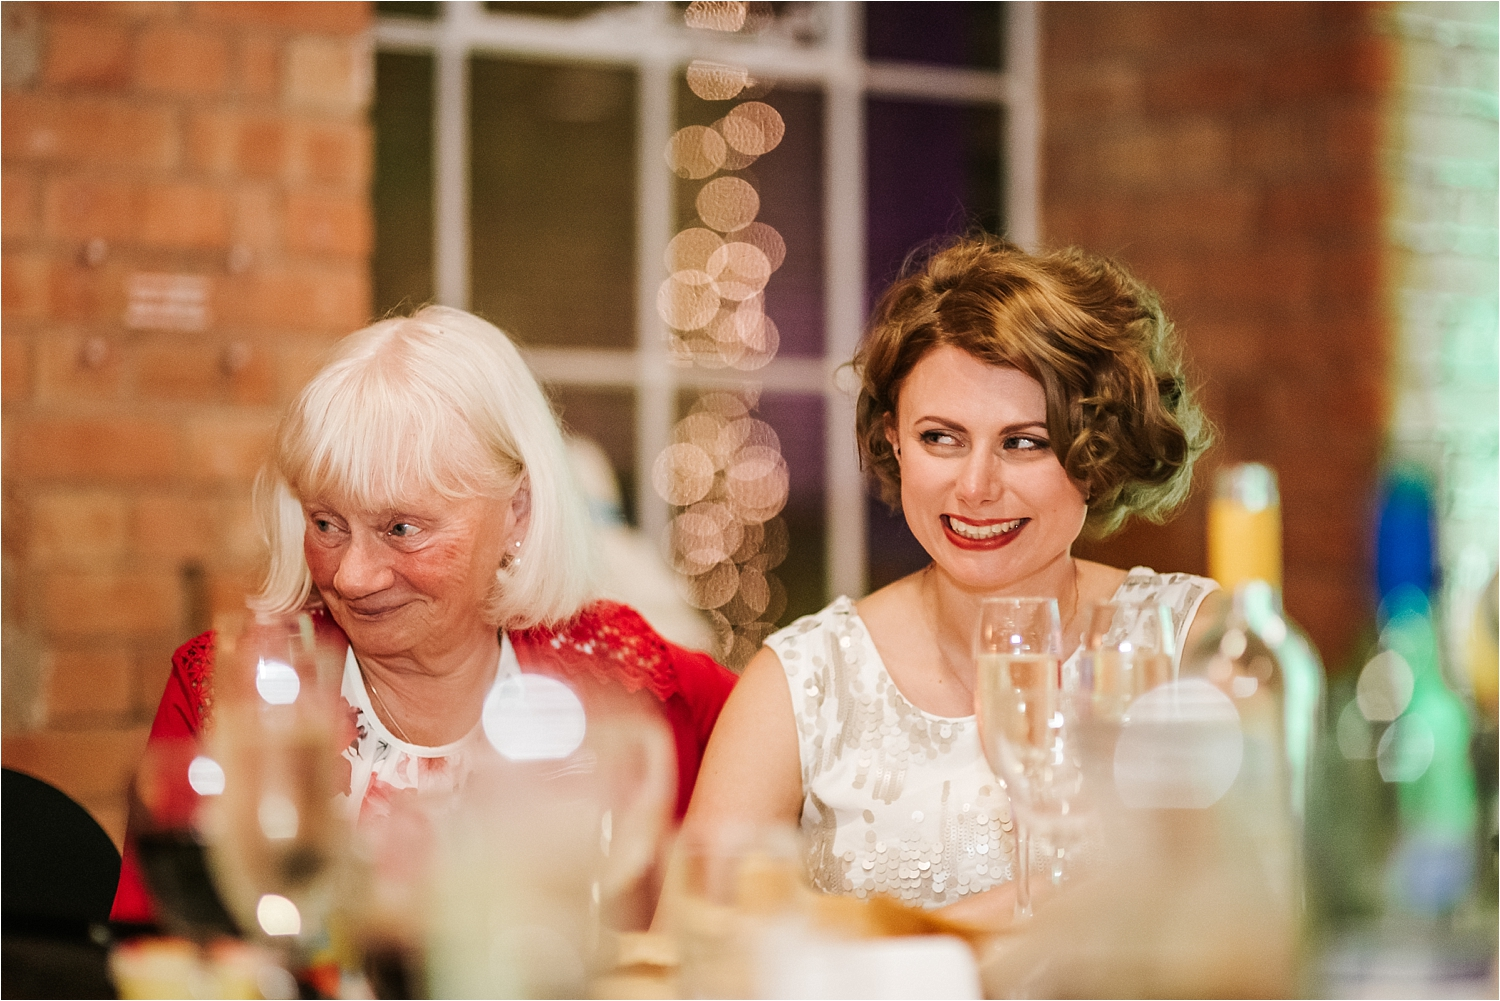 Victoria-Ben-The-West-Mill-darley-abbey-natural-relaxed-documentary-wedding-photography-photographer-Derby-Nottingham-Derbyshire-Nottinghamshire-Leicestershire-Lincolnshire-East-Midlands_0176.jpg